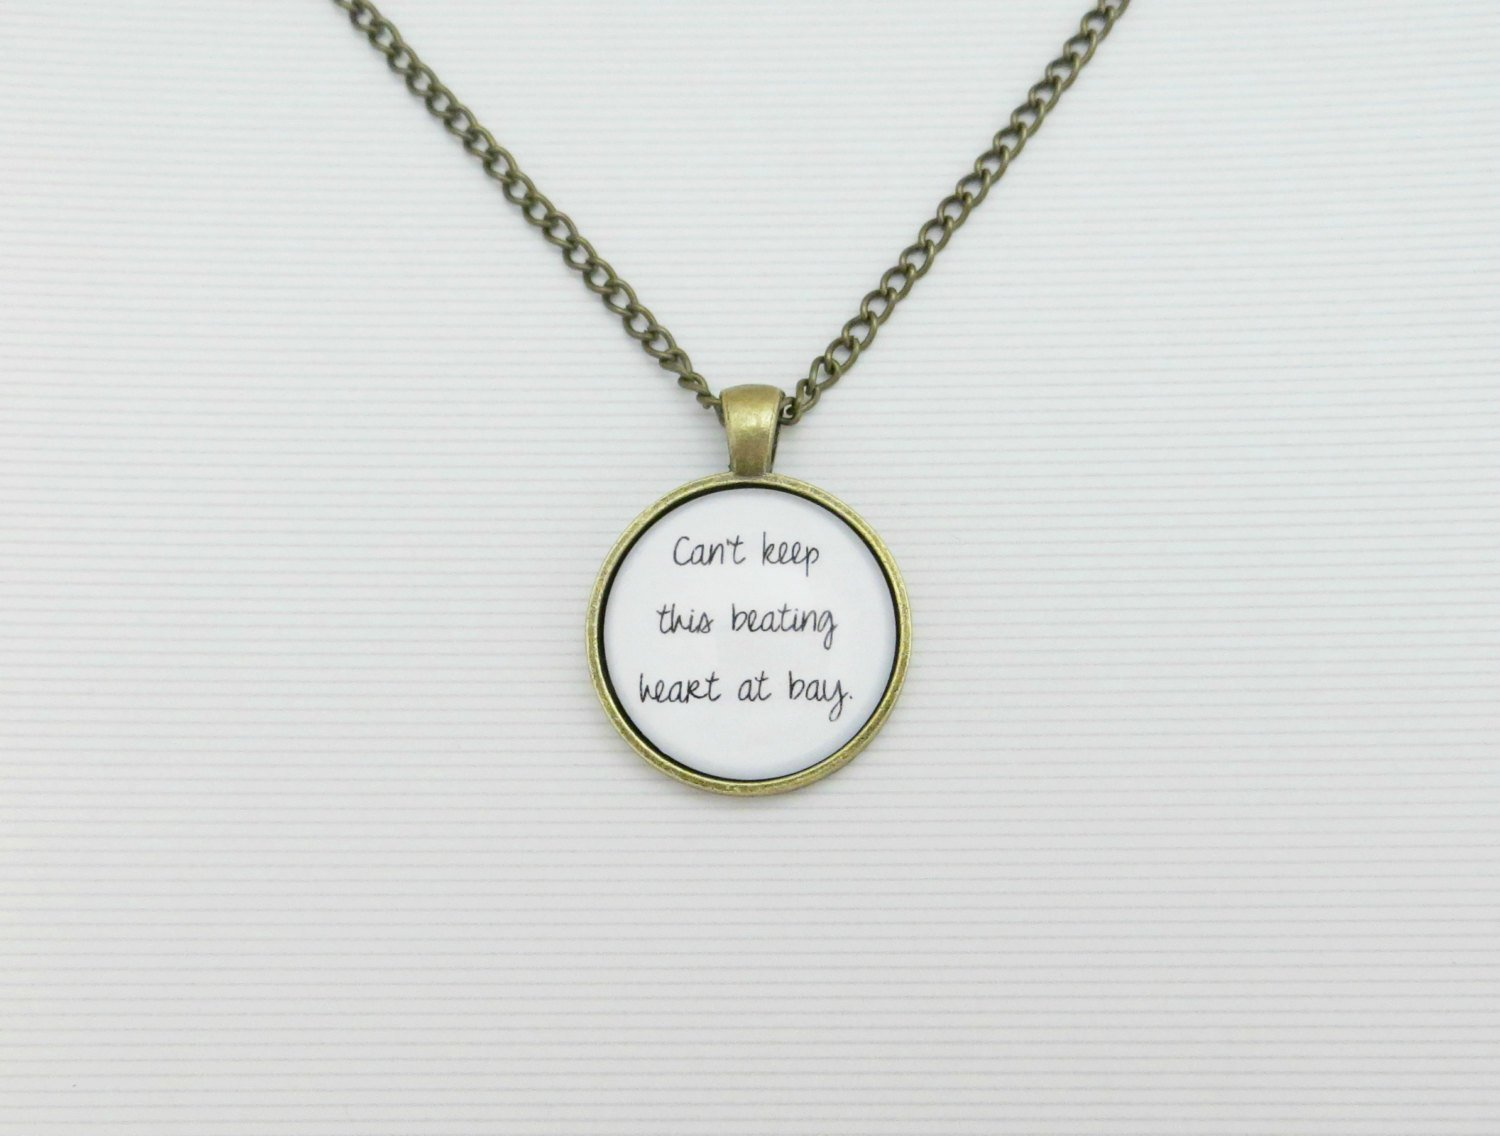 Sam Smith Leave Your Lover Inspired Lyrical Quote Pendant Necklace (Brass, 18 inches)